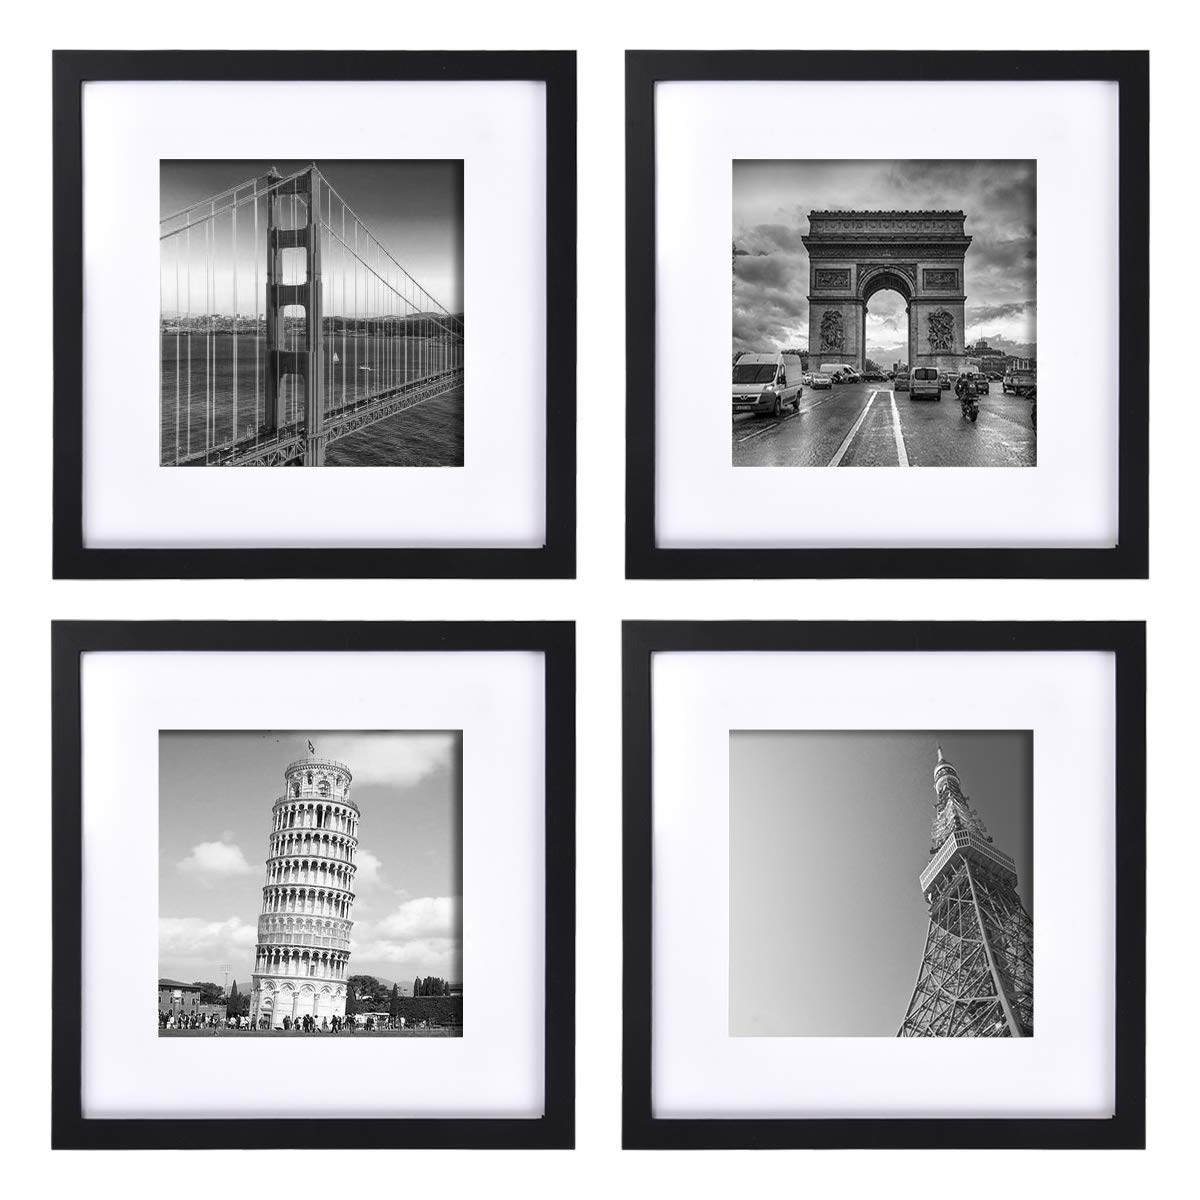 wenmer 12x12 Picture Frame Black Gallery Picture Frames with Mat to 8x8 for Wall Mount or Table Top 4 Pack